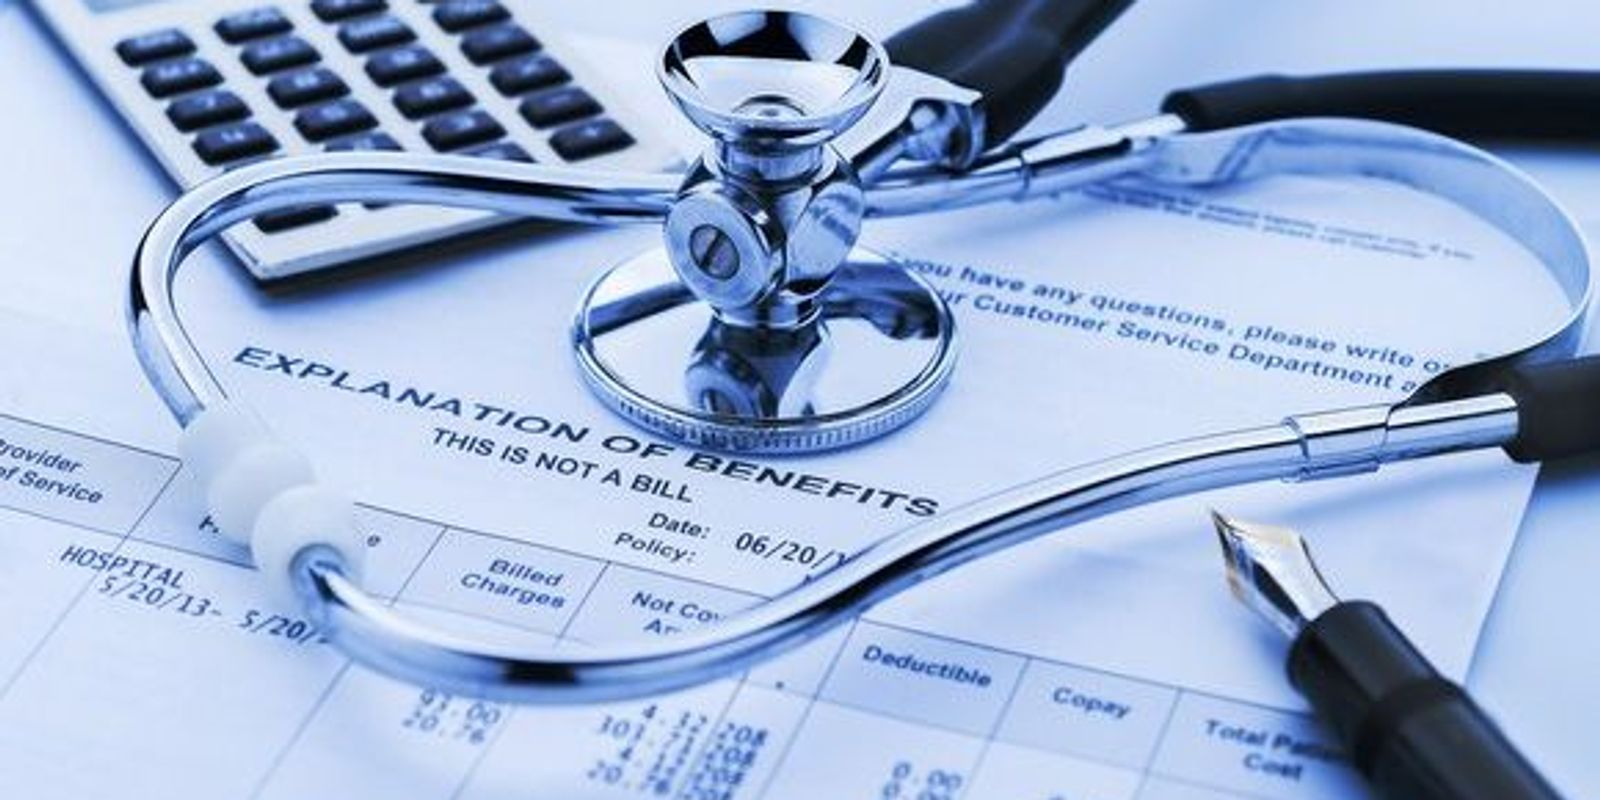 How to Access Medical Insurance Benefits